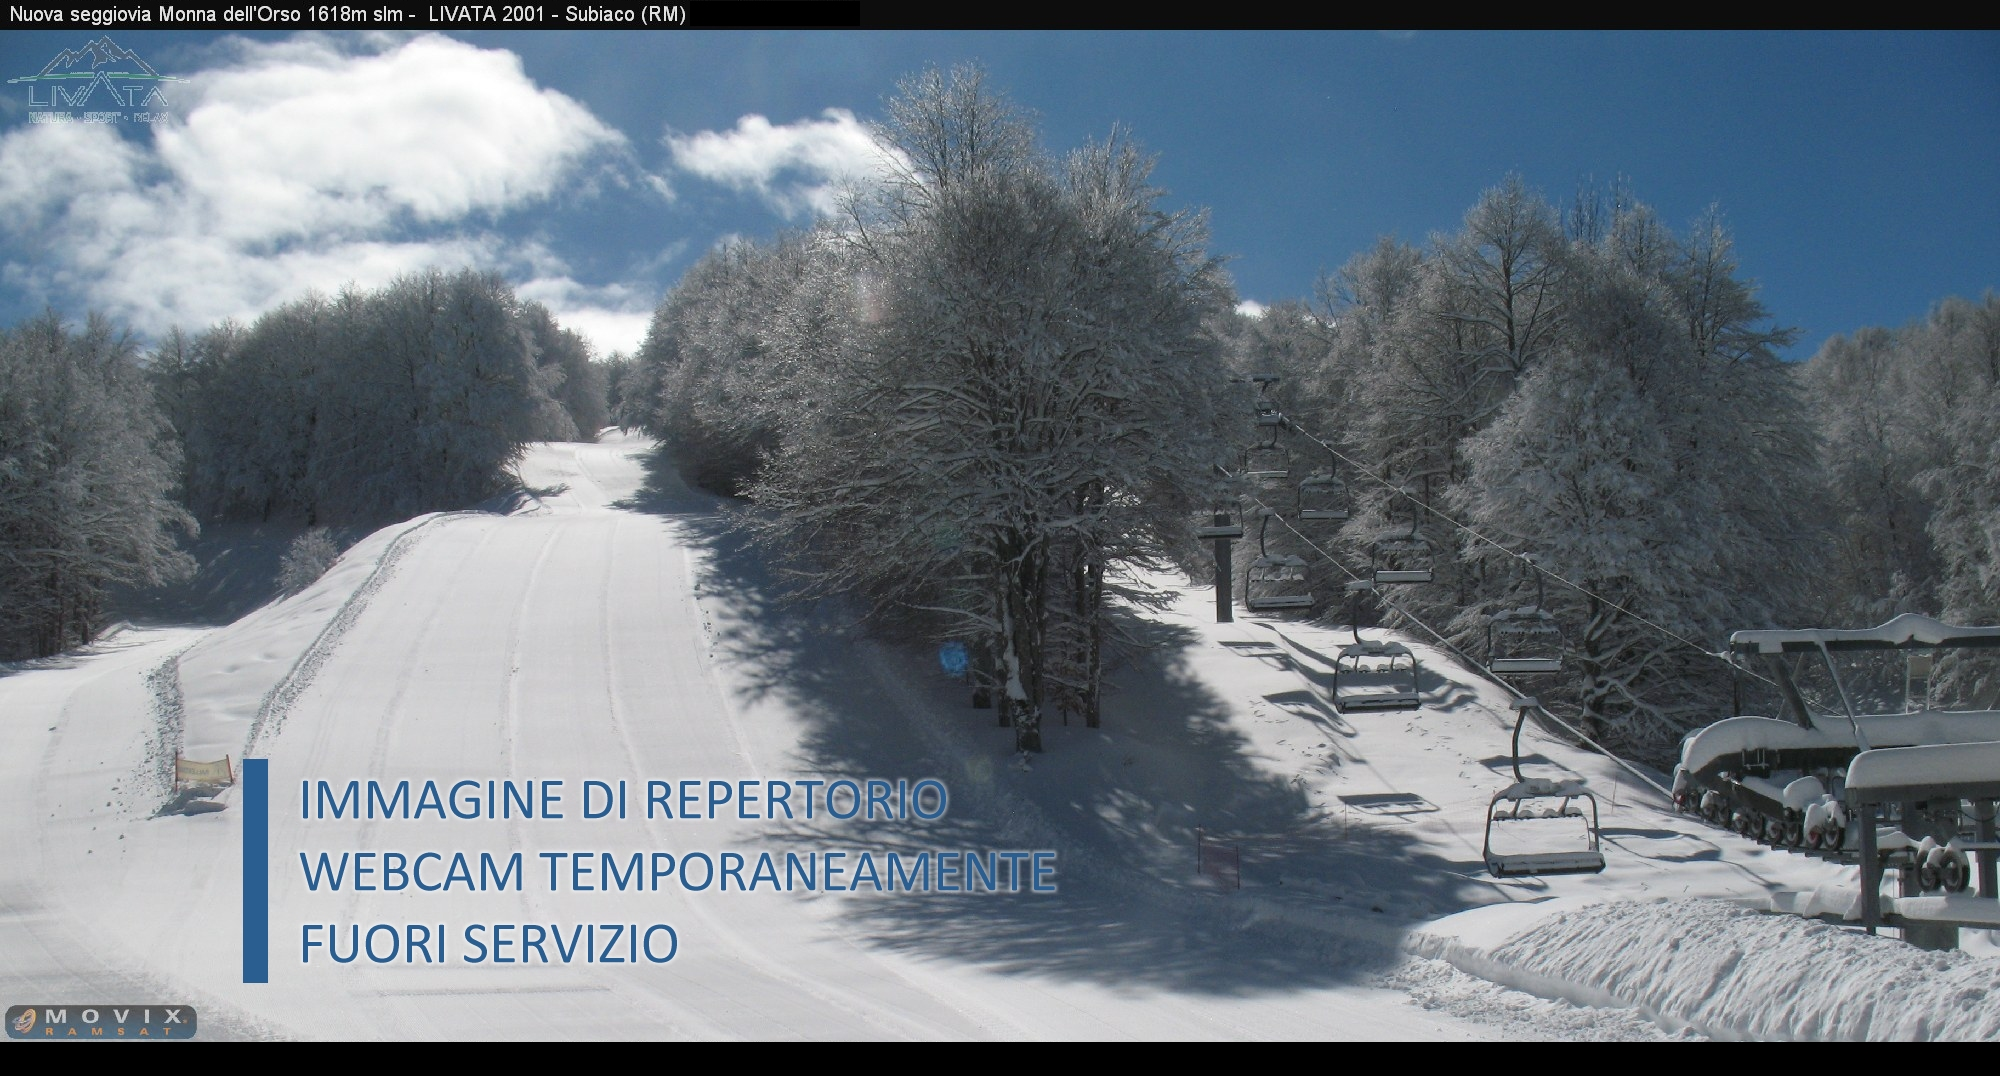 Webcam <br><span> livata - monna dell'orso</span>